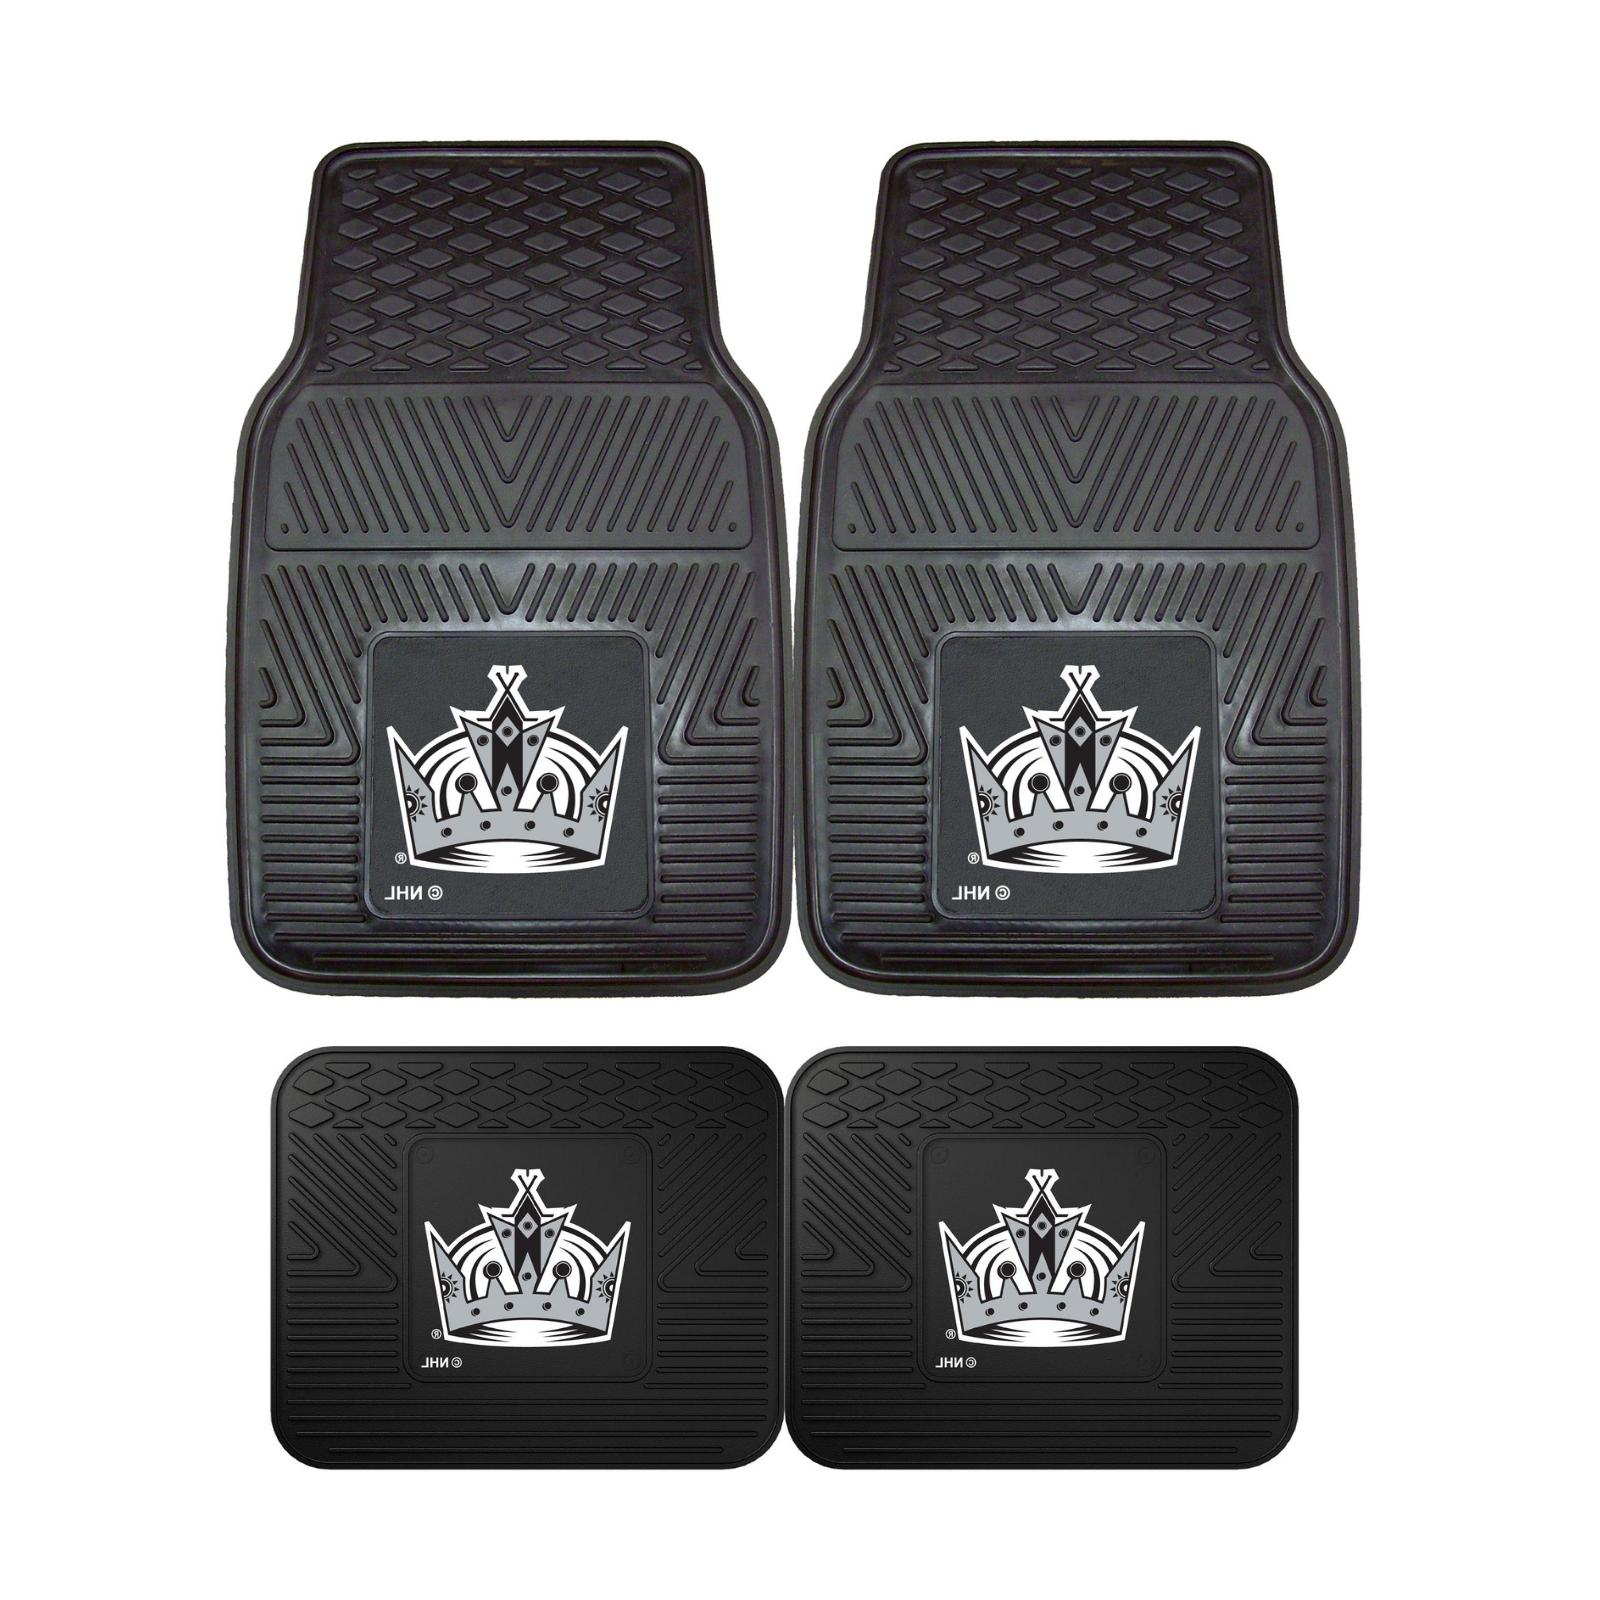 los angeles kings nhl 2pc and 4pc